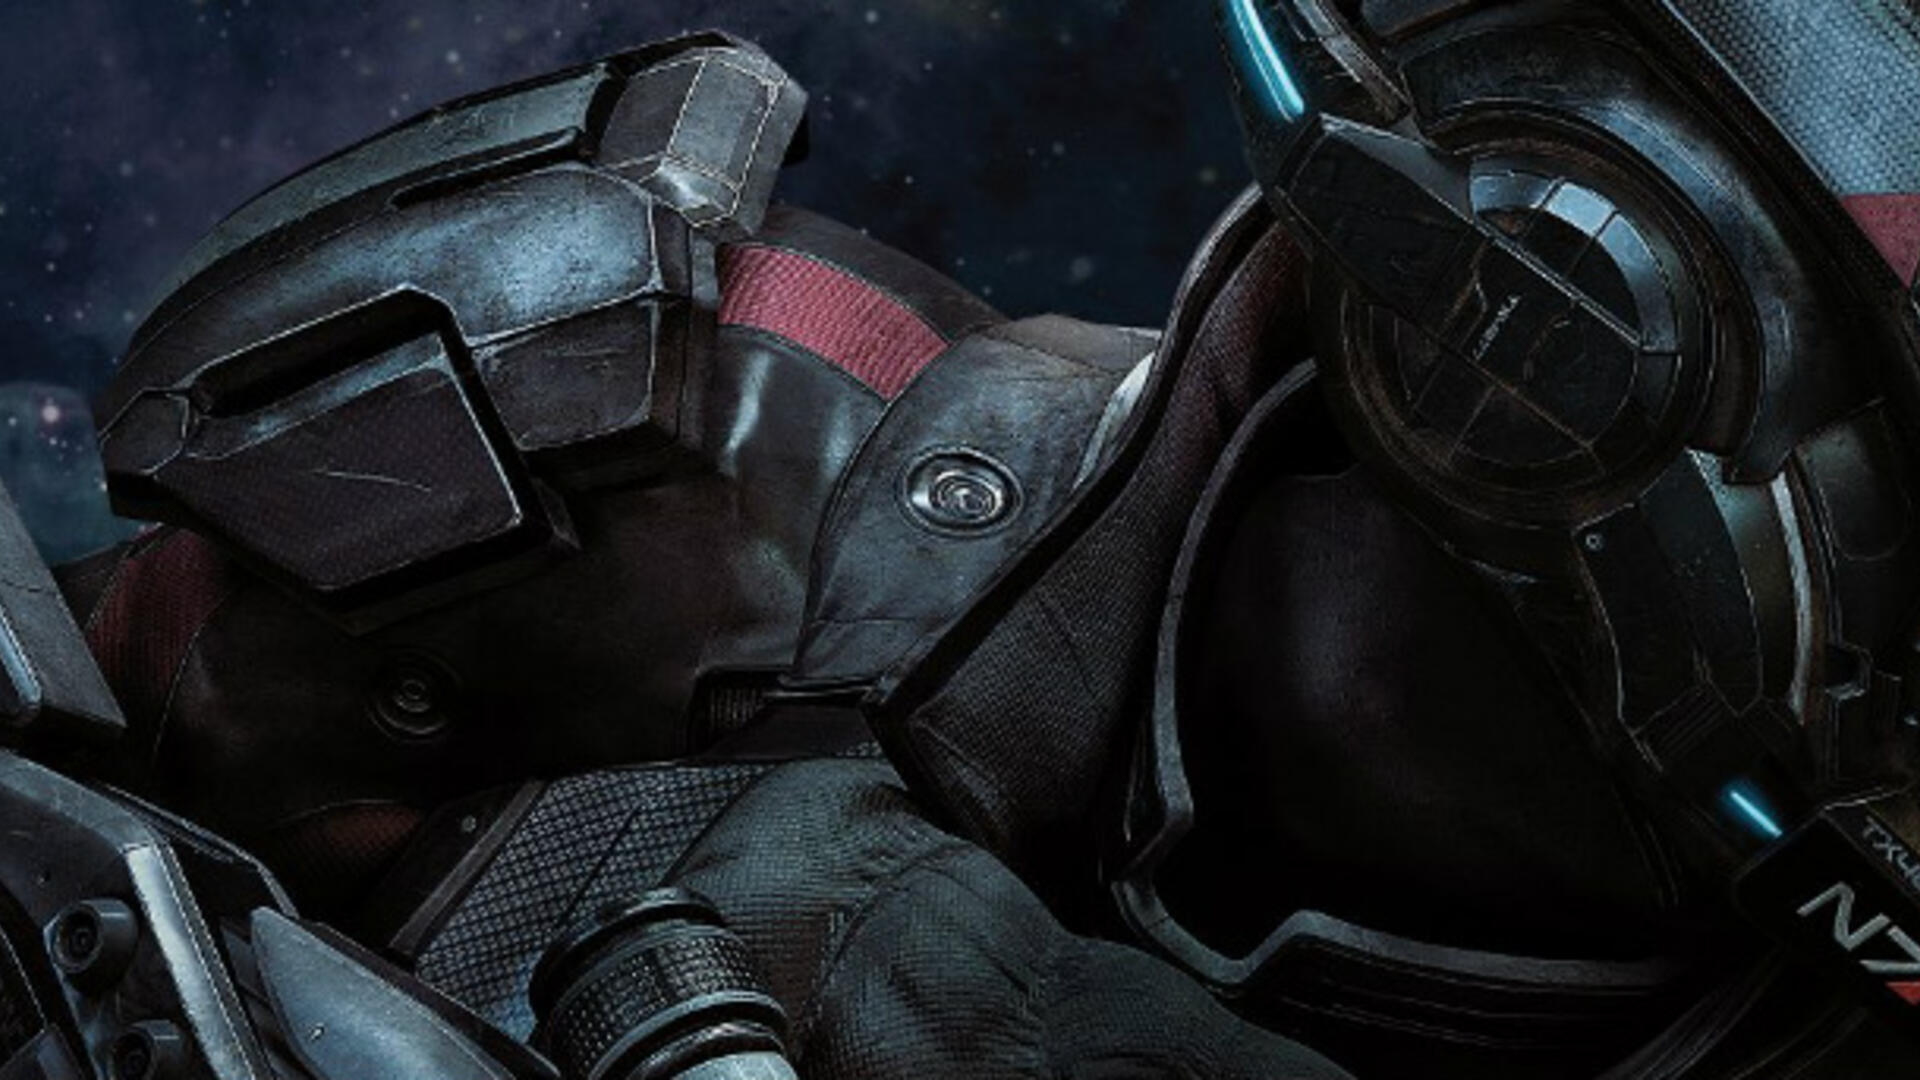 Mass Effect Andromeda Finally Dated: March 21, 2017 in North America